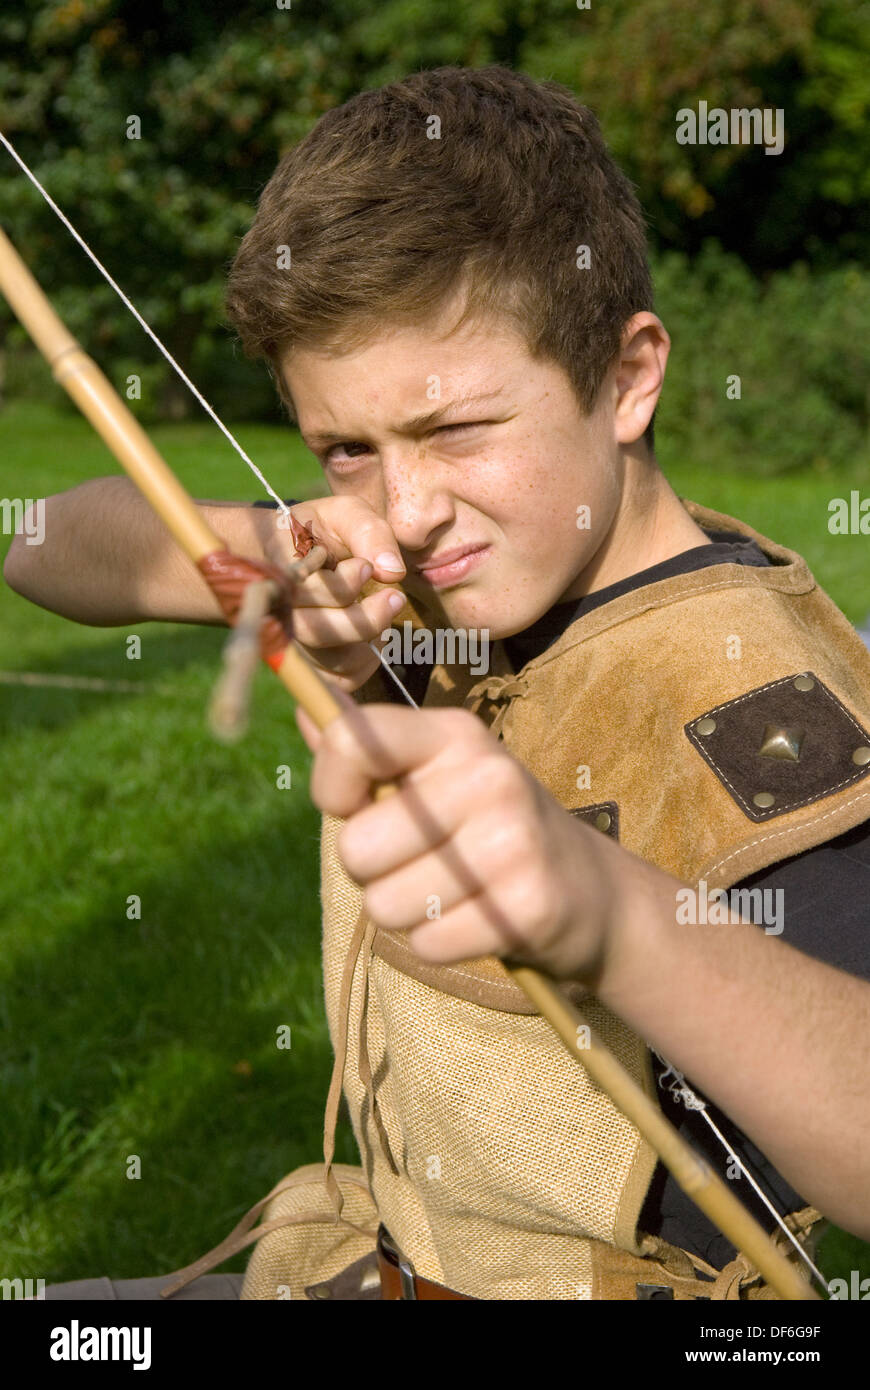 10 year old boy at a local village history open day focussing on the Saxon era learning how to use a bow and arrow - Stock Image